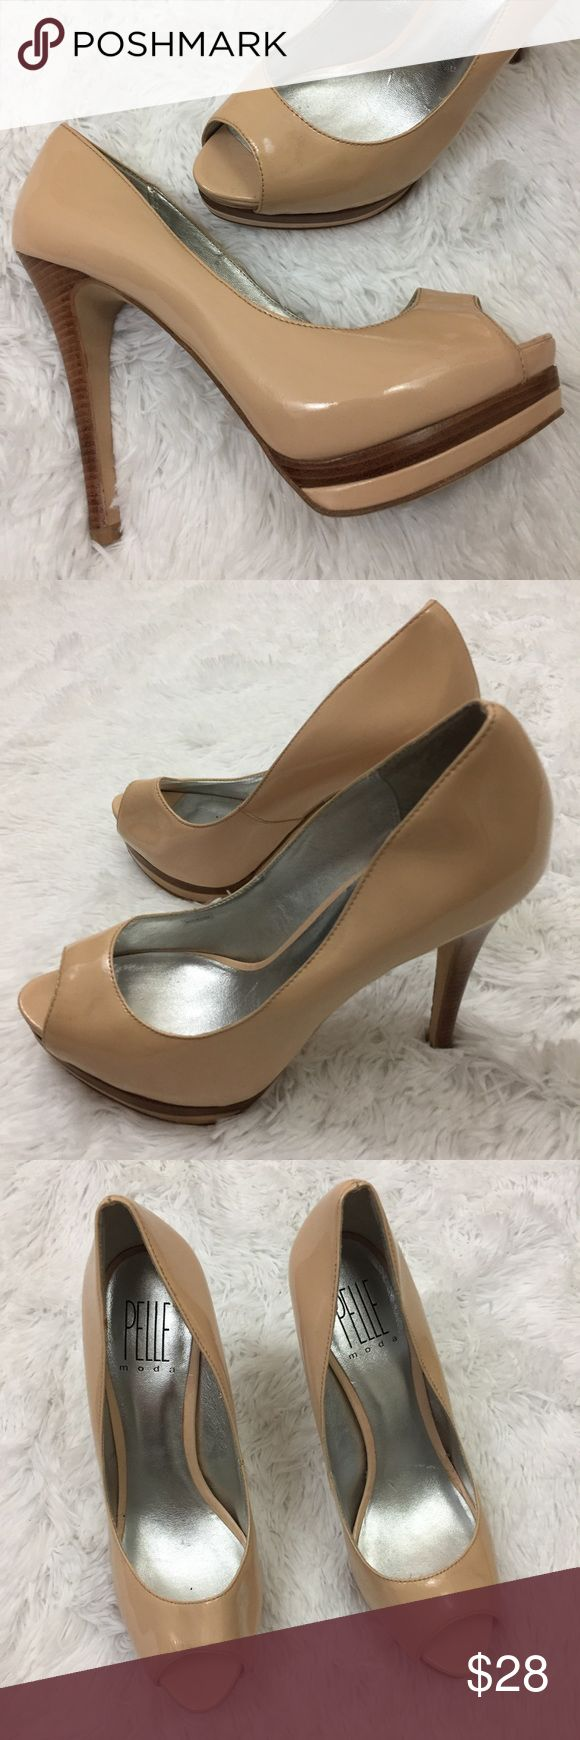 "Pella Mode nude and brown peep toe Pumps Sz 7.5 These Pelle Moda nude and brown peep toe Pumps have a 5"" heel and just under 1"" of Platform. They are in good preowned condition with no known flaws and light overall wear. The heels are a brown wood grain look and these are a great work show or party shoe!  They are a Women's size 7.5. pelle moda Shoes Heels"